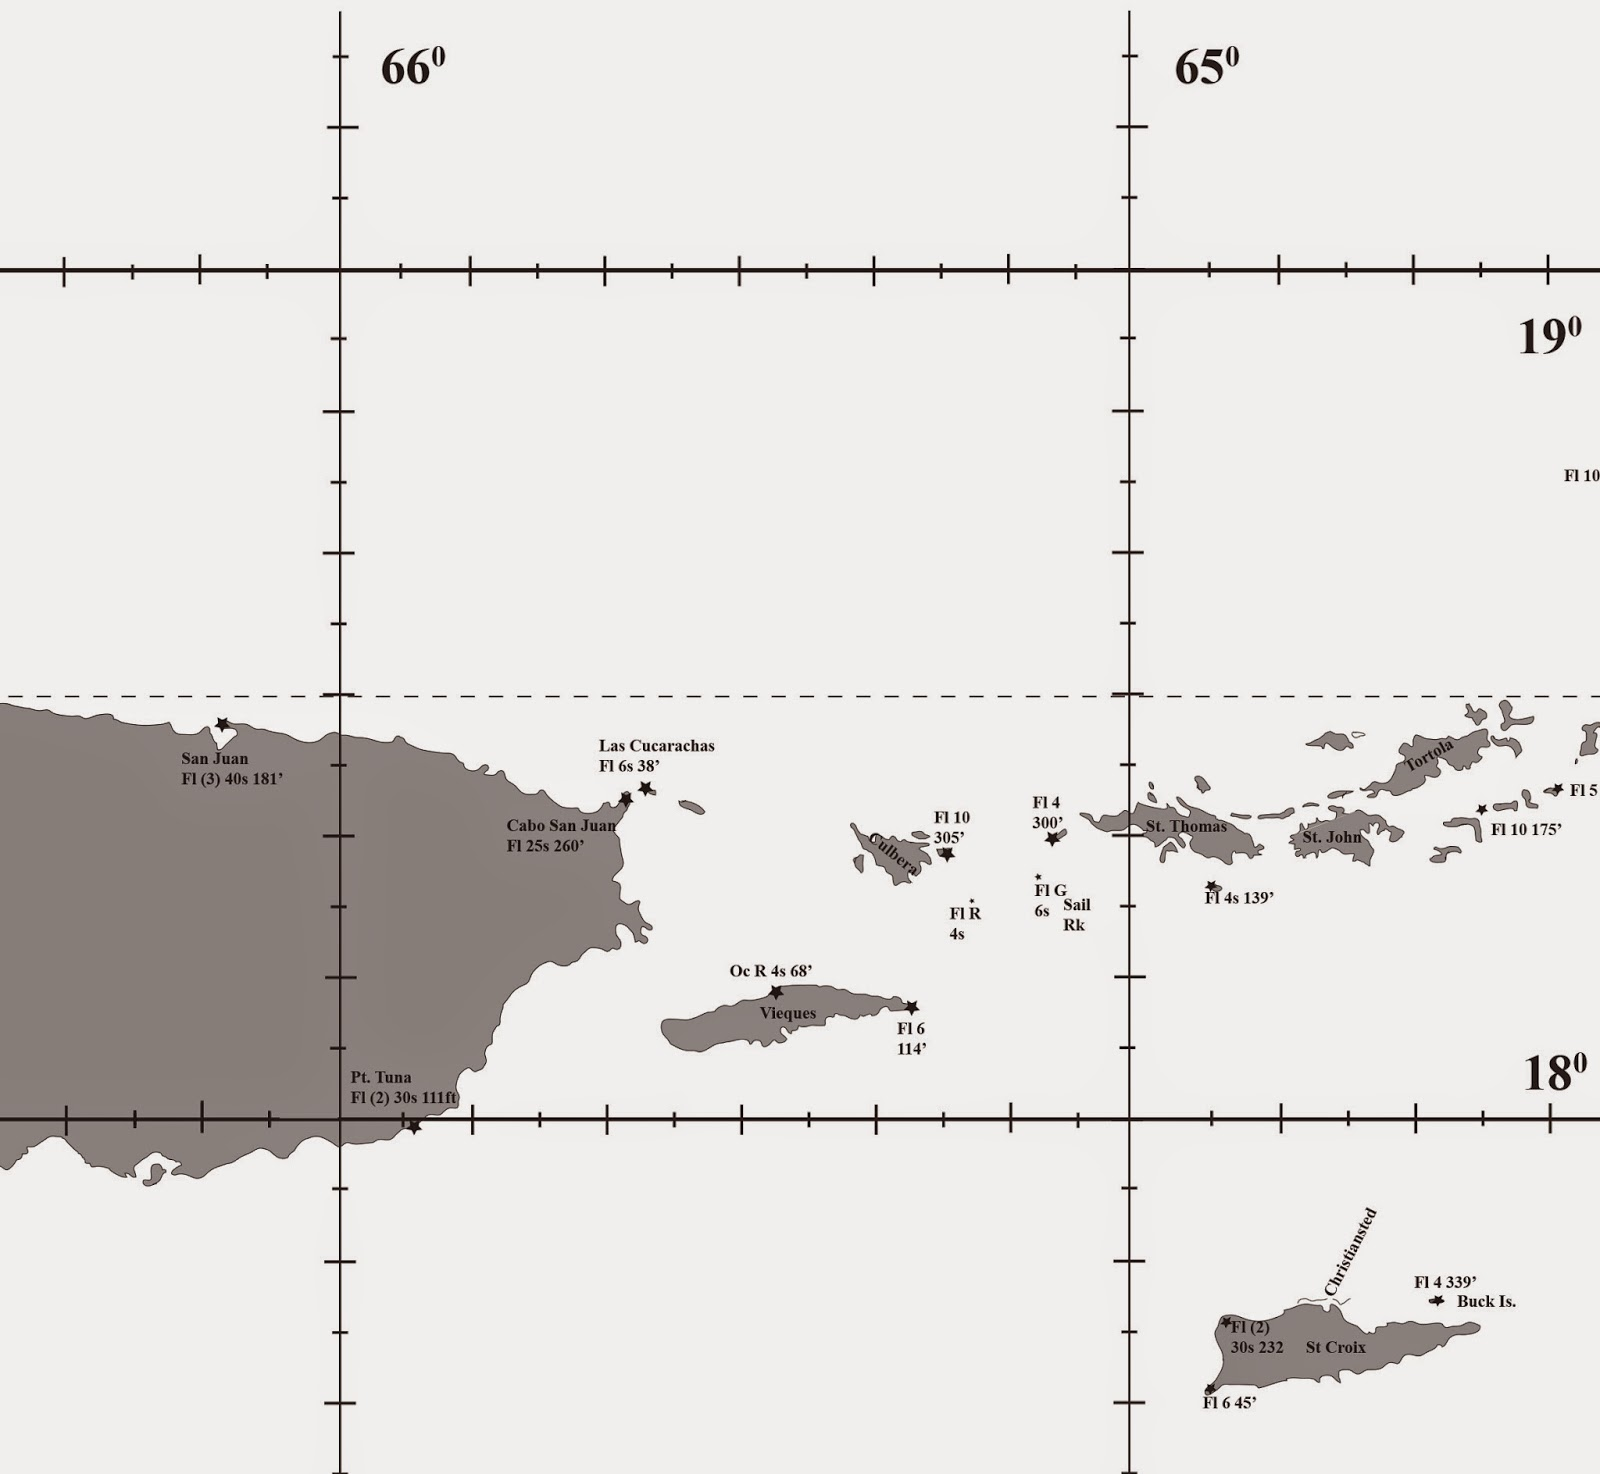 chart of the region of the cruise st croix usvi is at the bottom right and san juan is at the top left click on the image to enlarge